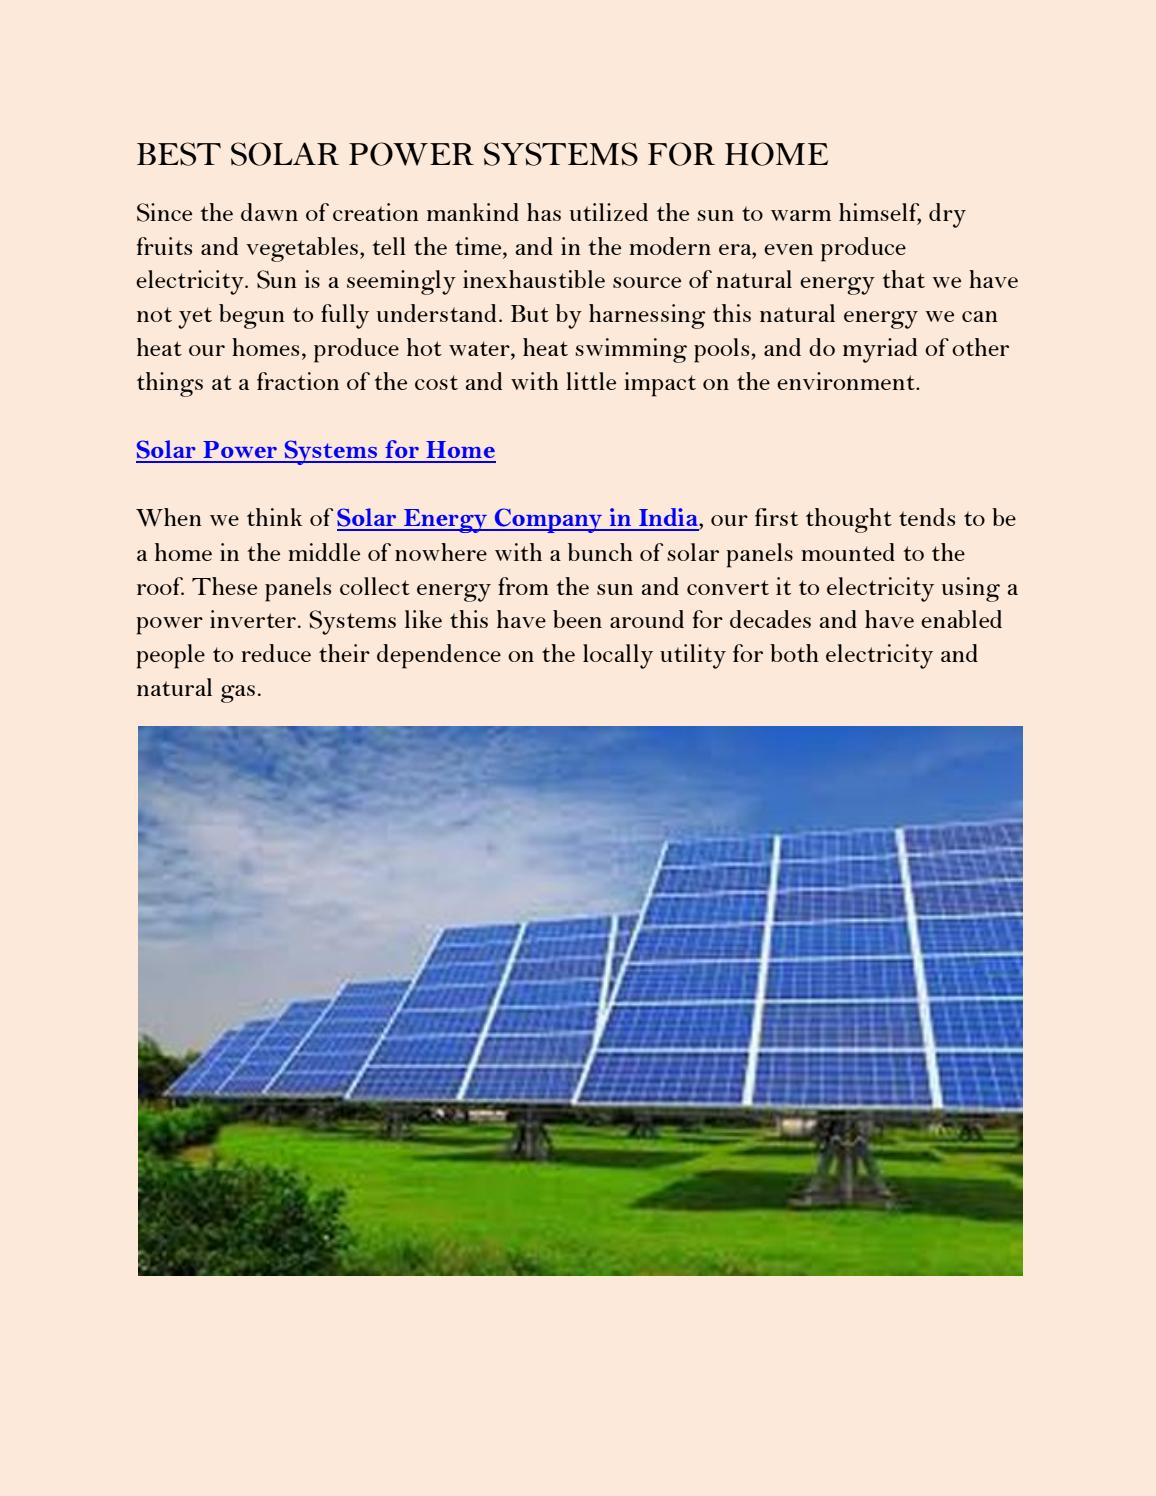 Best solar power systems for home by rayspowerinfra - issuu